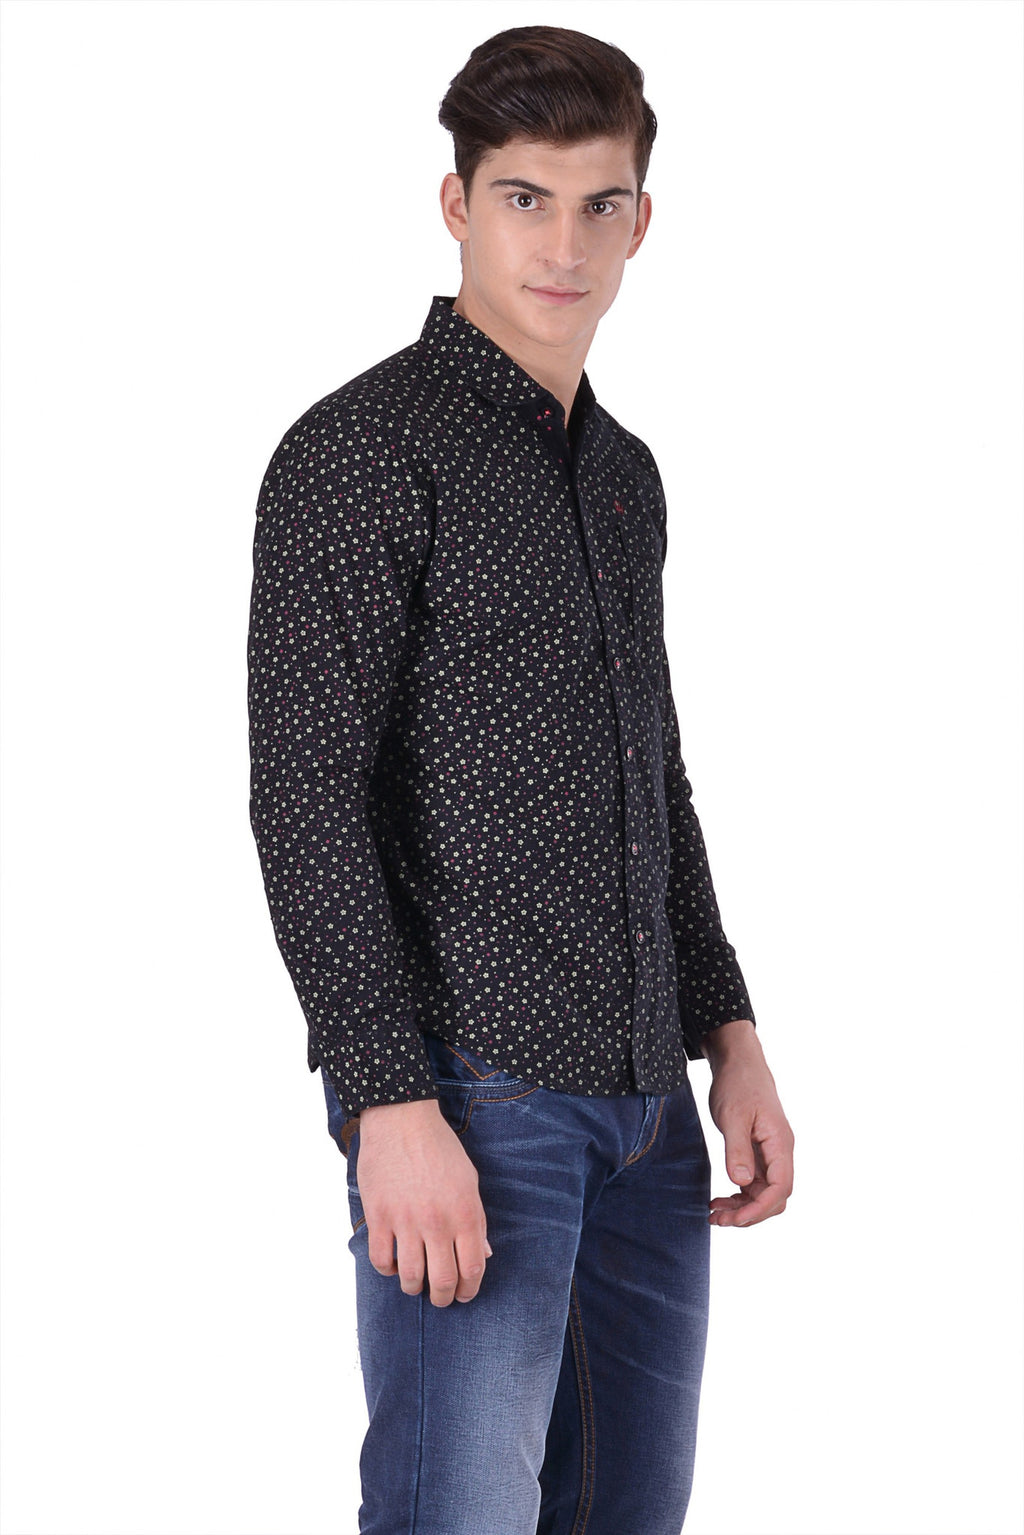 Hoffmen Men's Casual Shirt CR6085